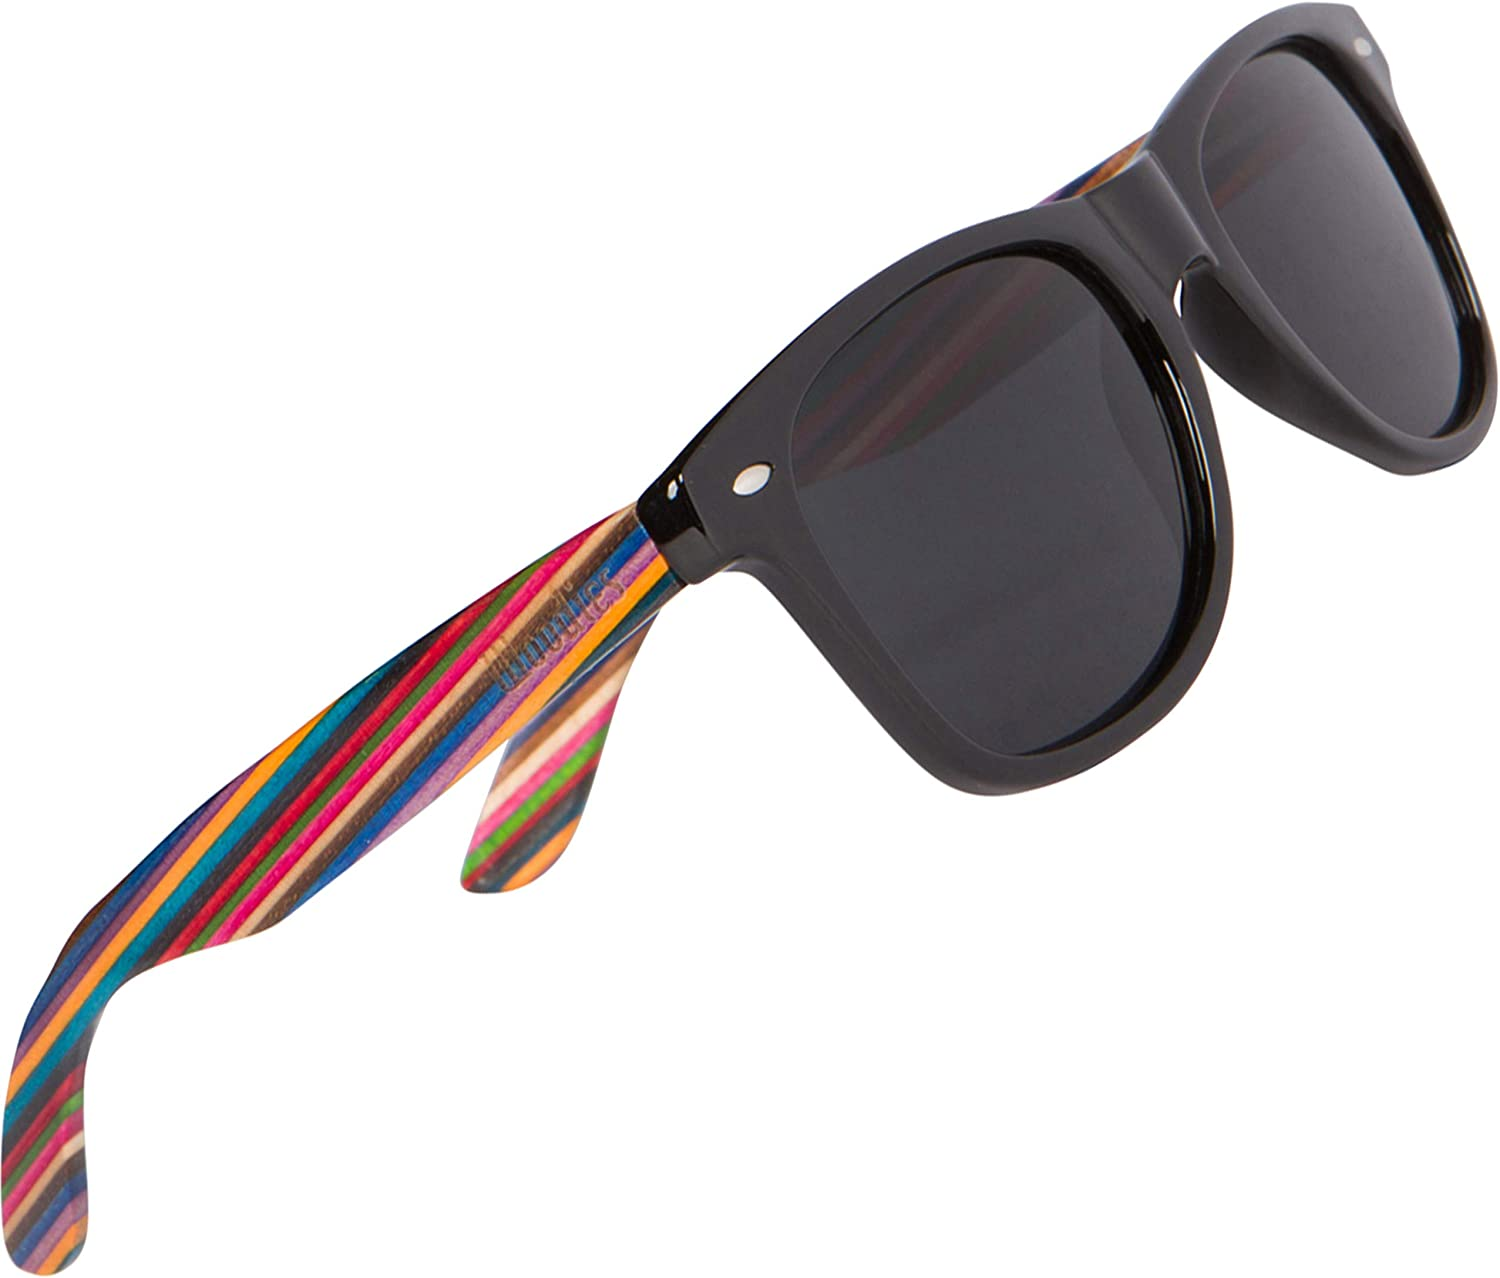 WOODIES Polarized Rainbow Wood Sunglasses for Men and Women | Black Polarized Lenses and Real Wooden Frame | 100% UVA/UVB Ray Protection